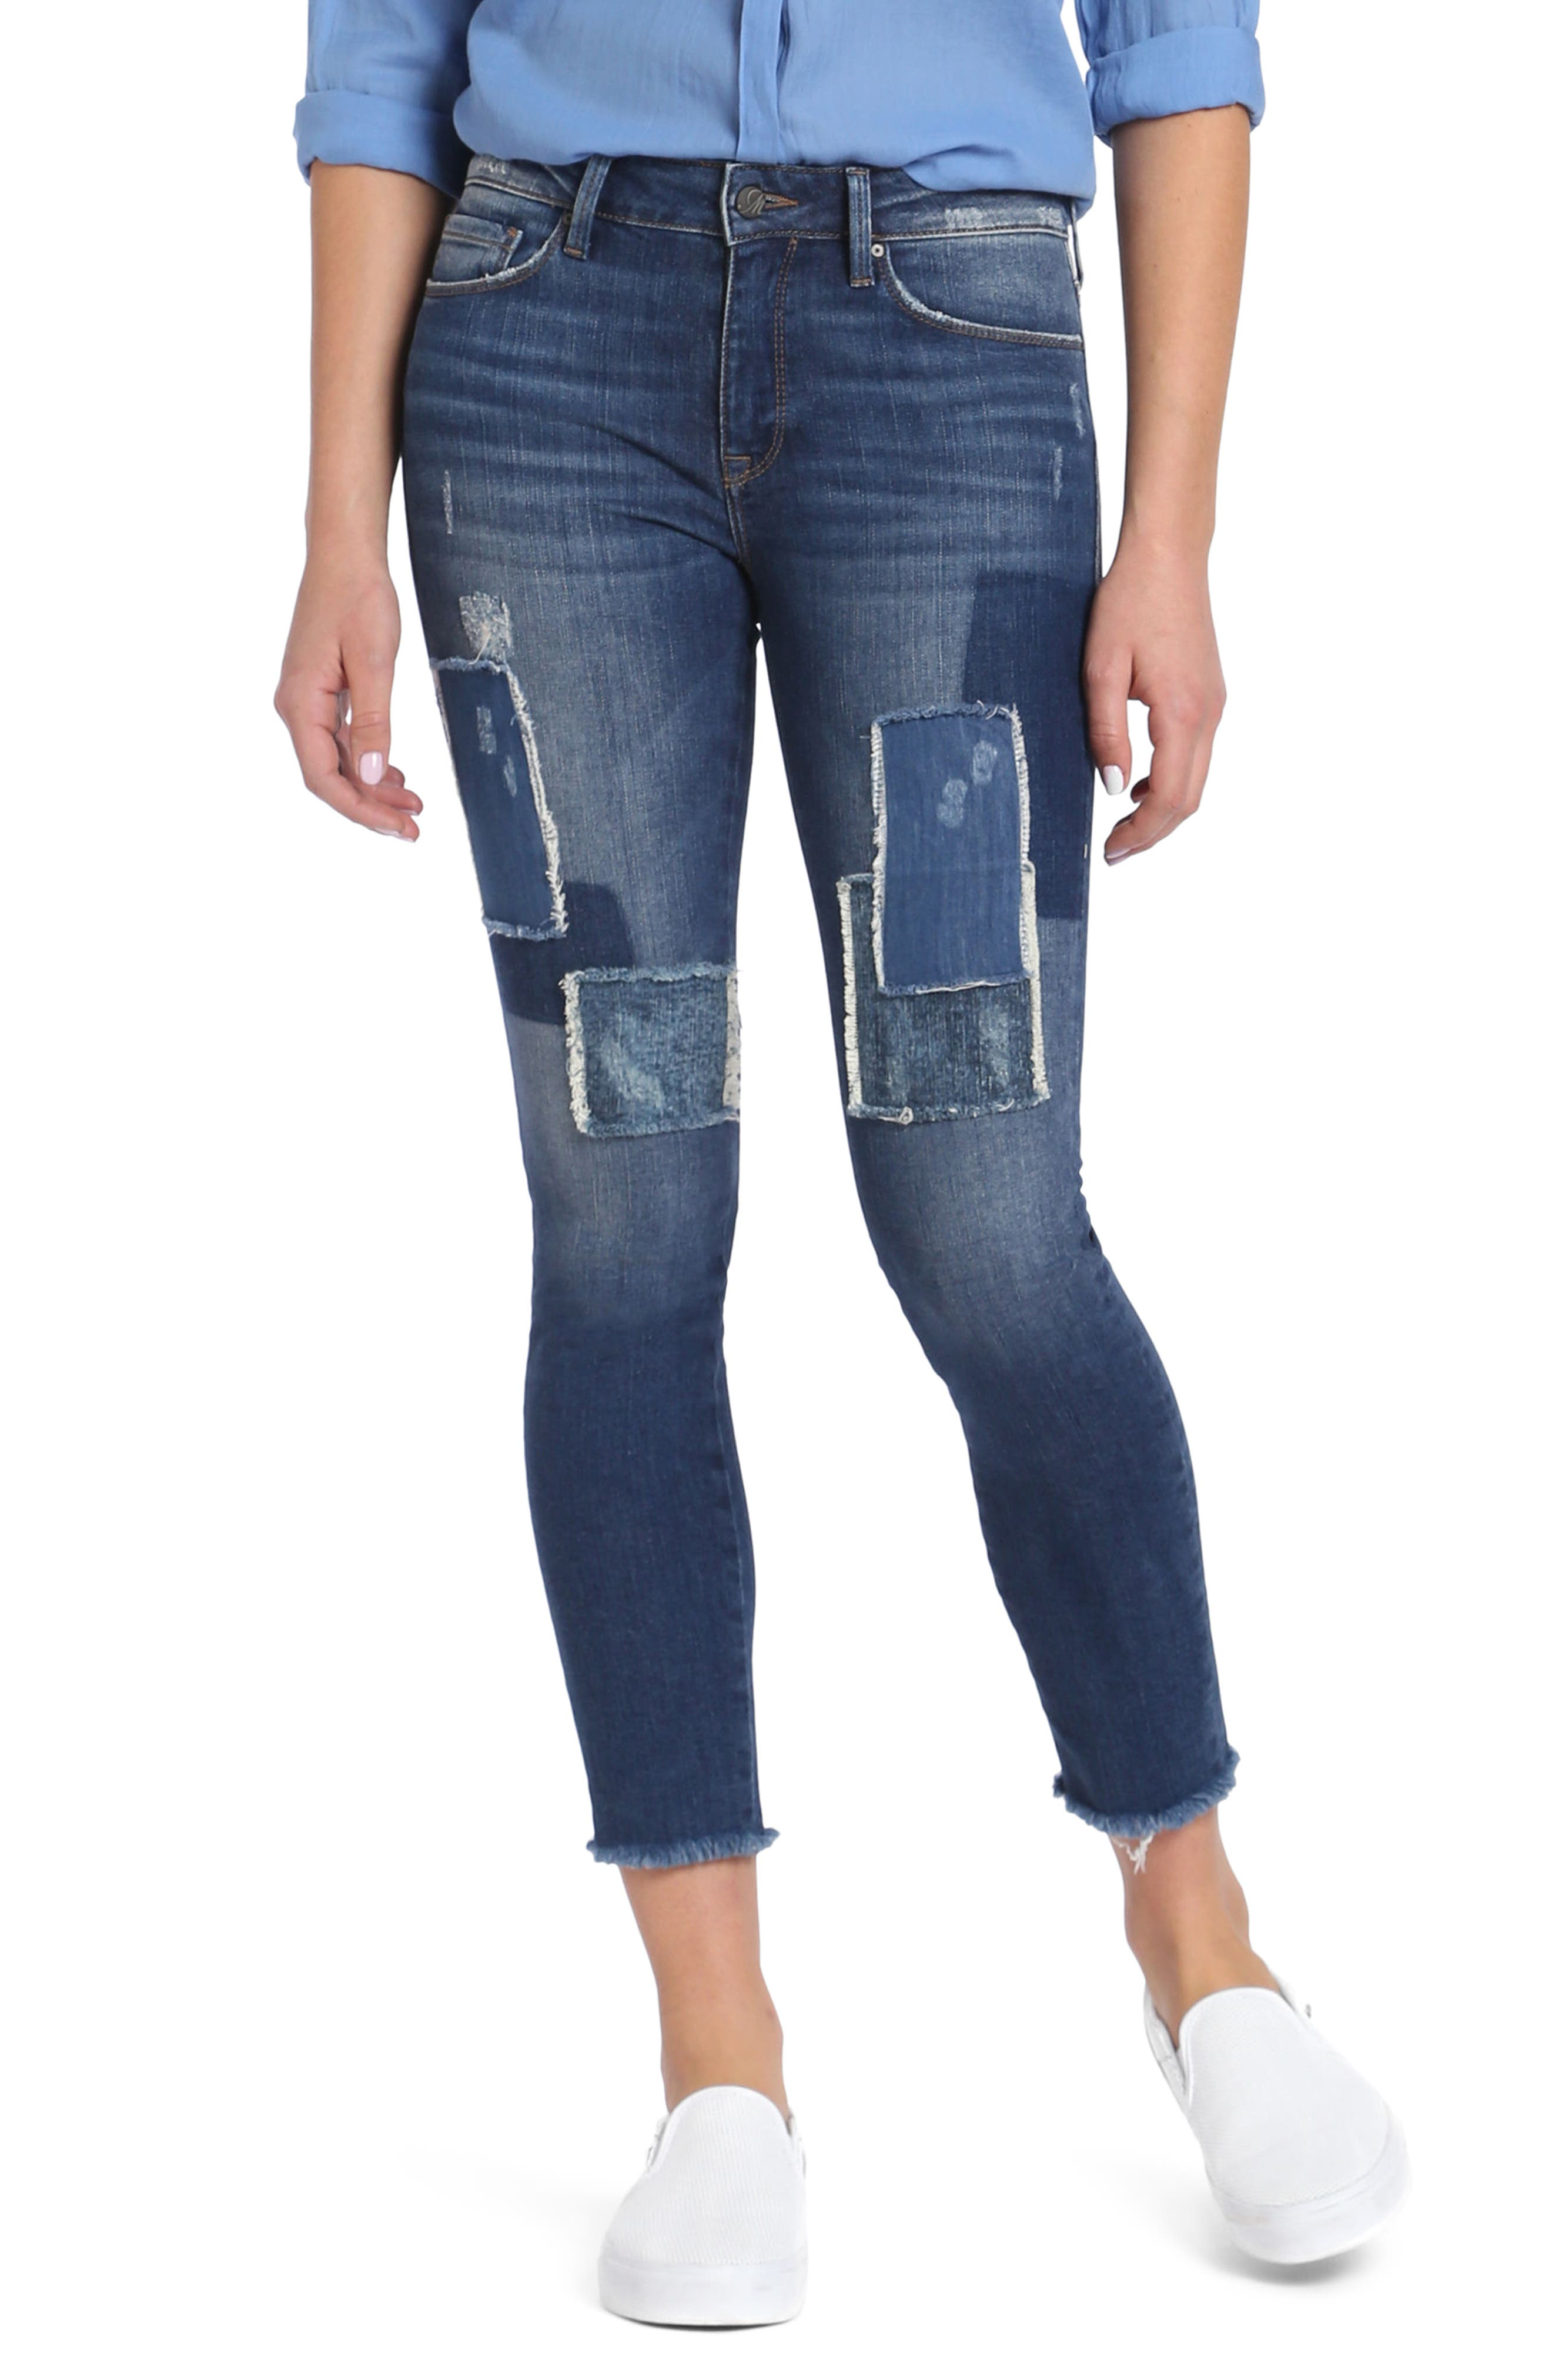 Adriana Patched Stretch Skinny Jeans,                         Main,                         color, Indigo Patched Vintage